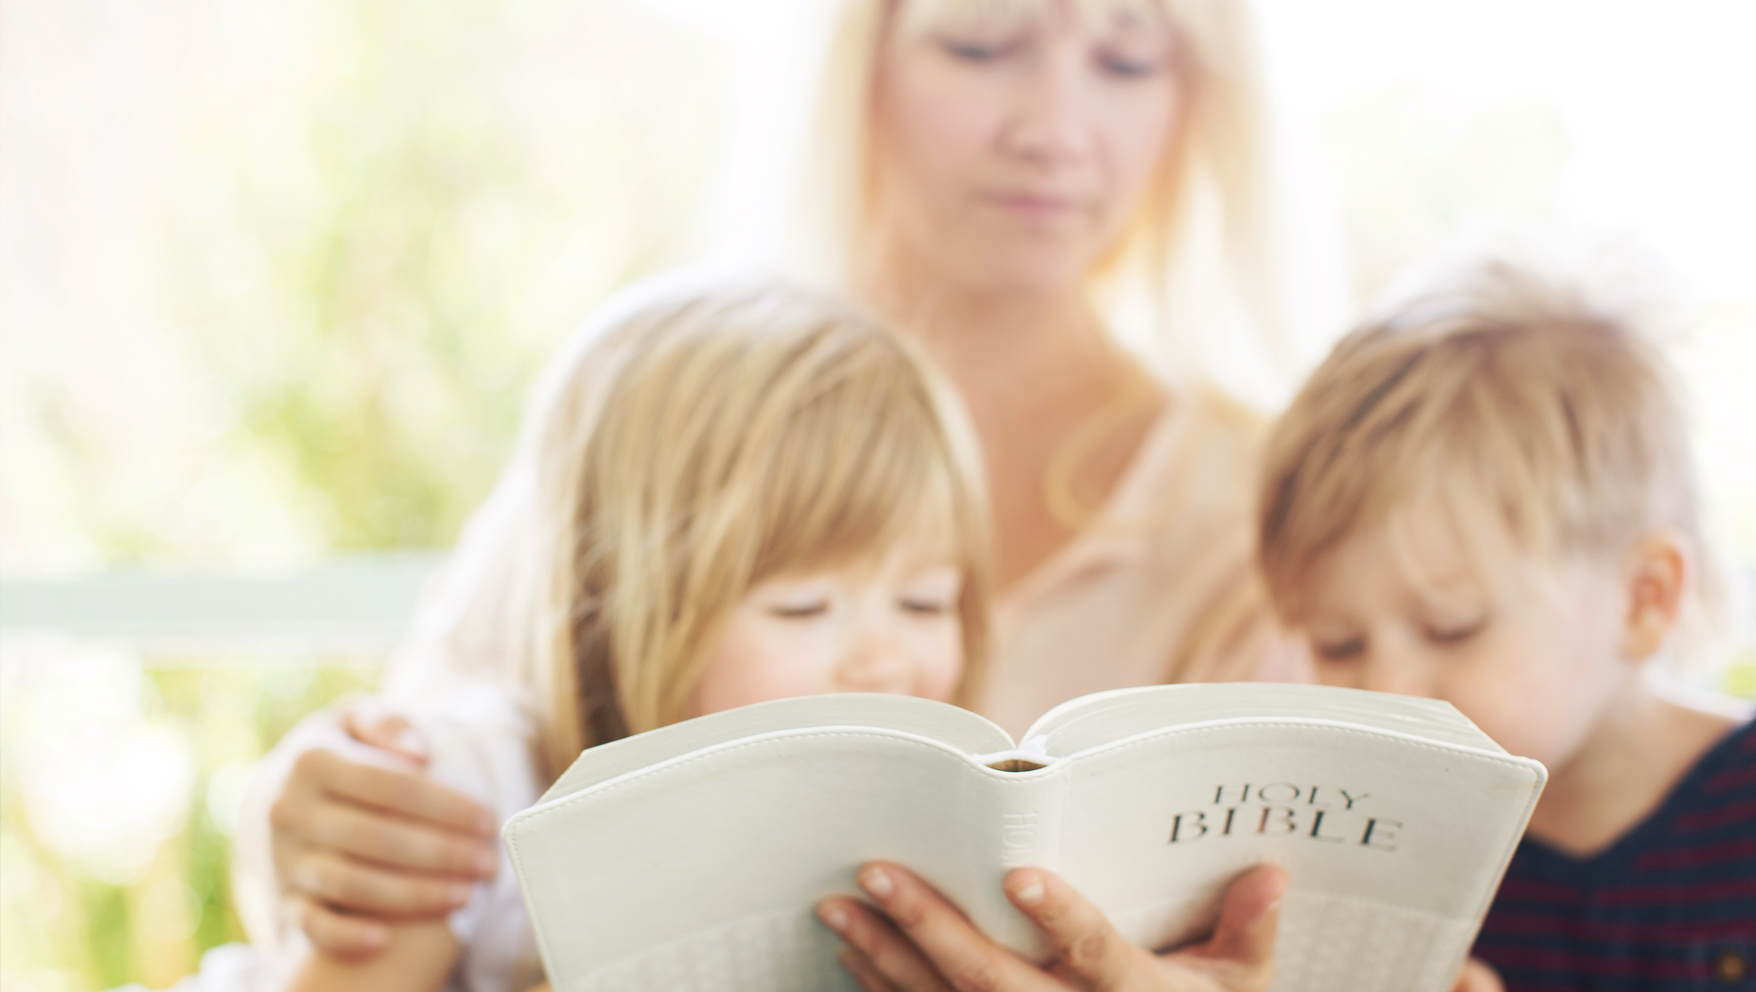 What Devotions Does Your Family Do?